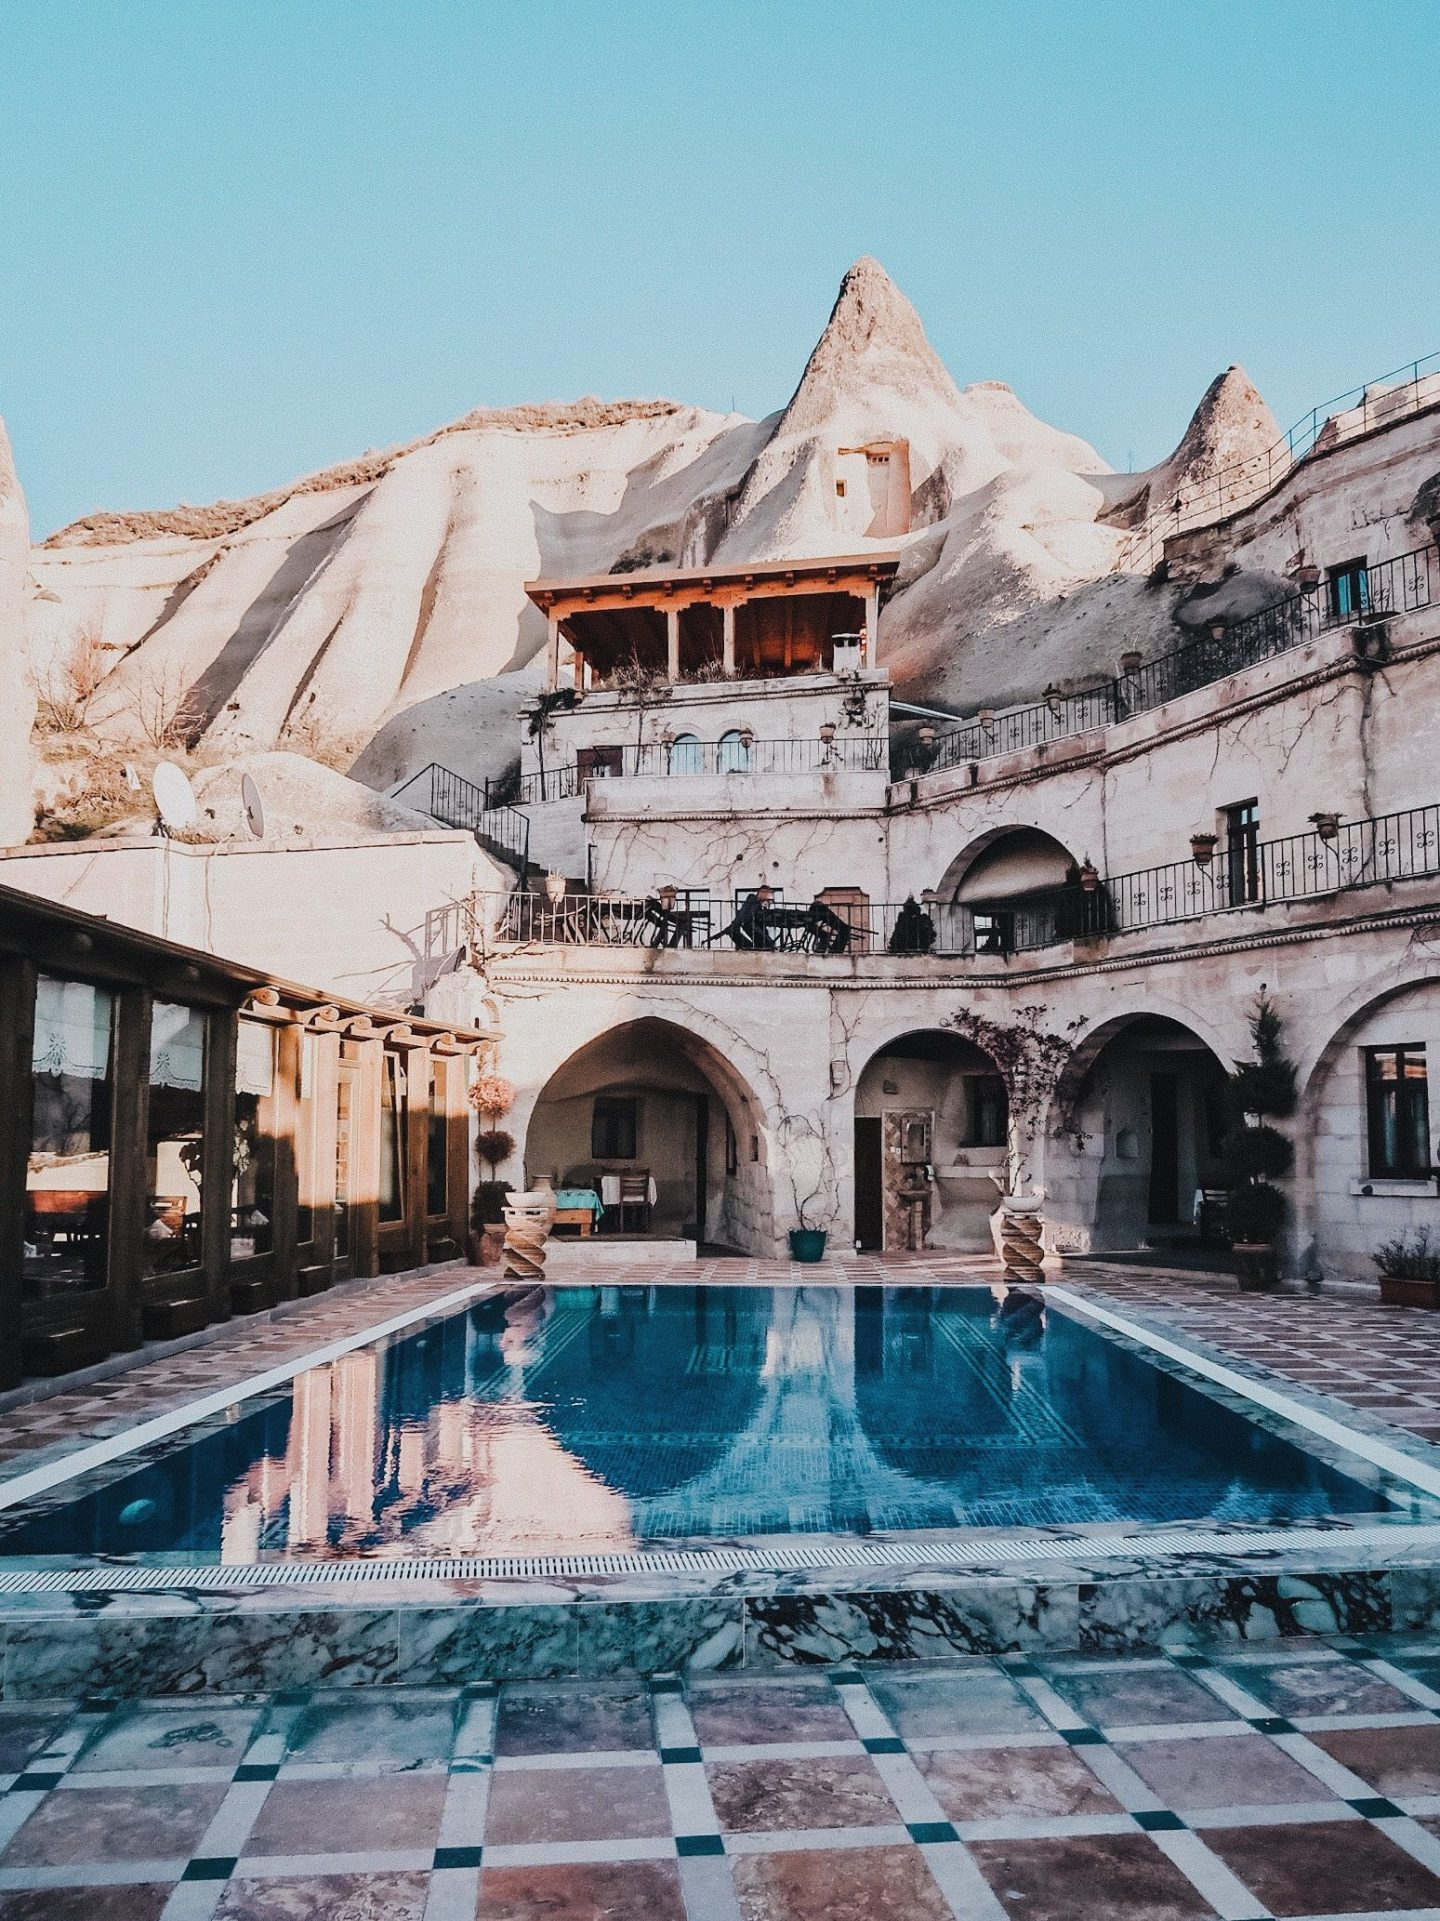 Illustrated by Sade - Pool at Local Cave House in Cappadocia